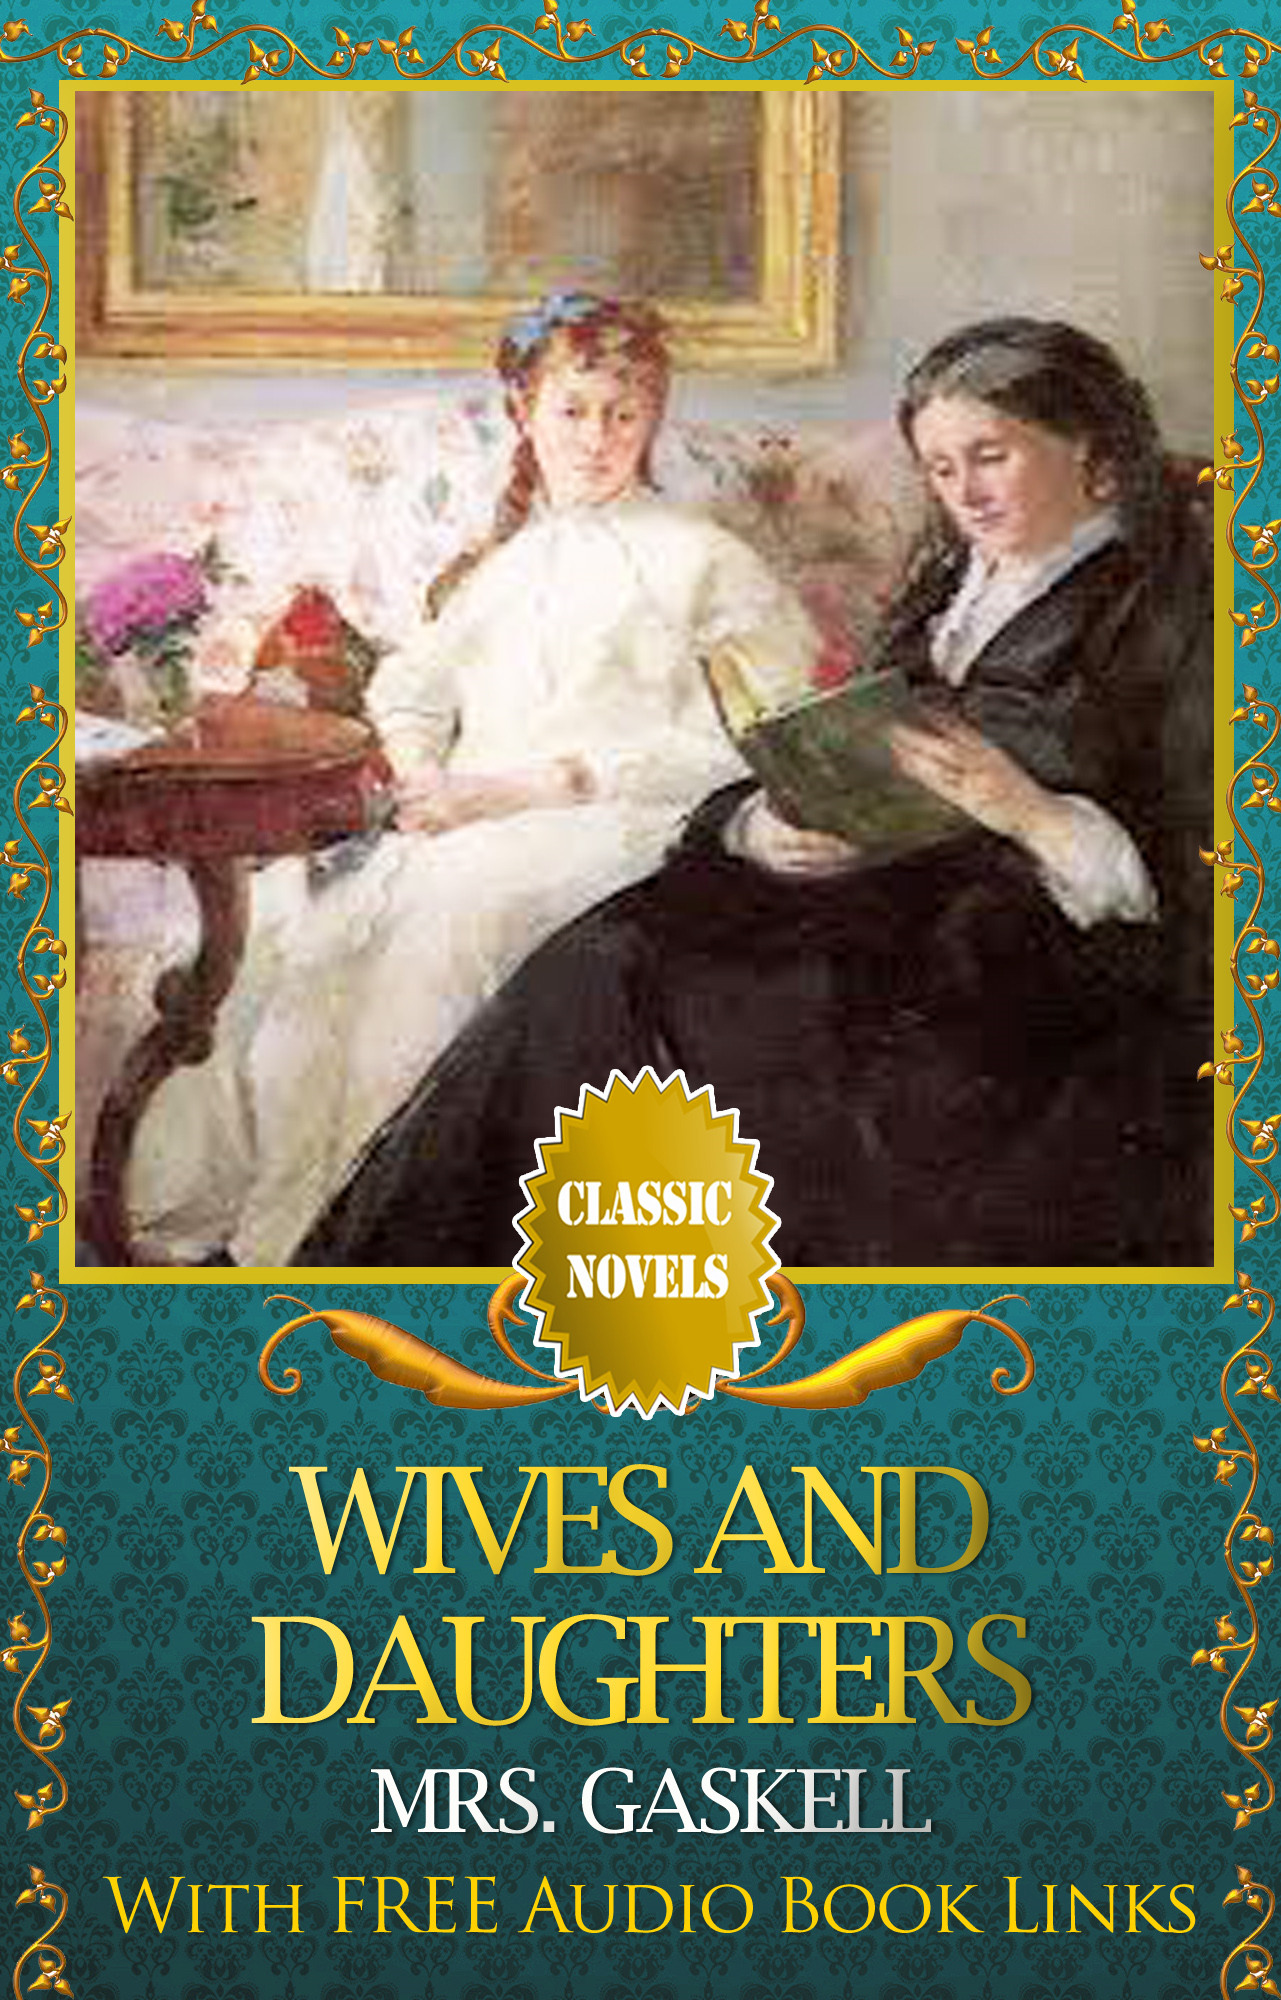 WIVES AND DAUGHTERS Classic Novels: New Illustrated [Free Audiobook Links] By: MRS. GASKELL